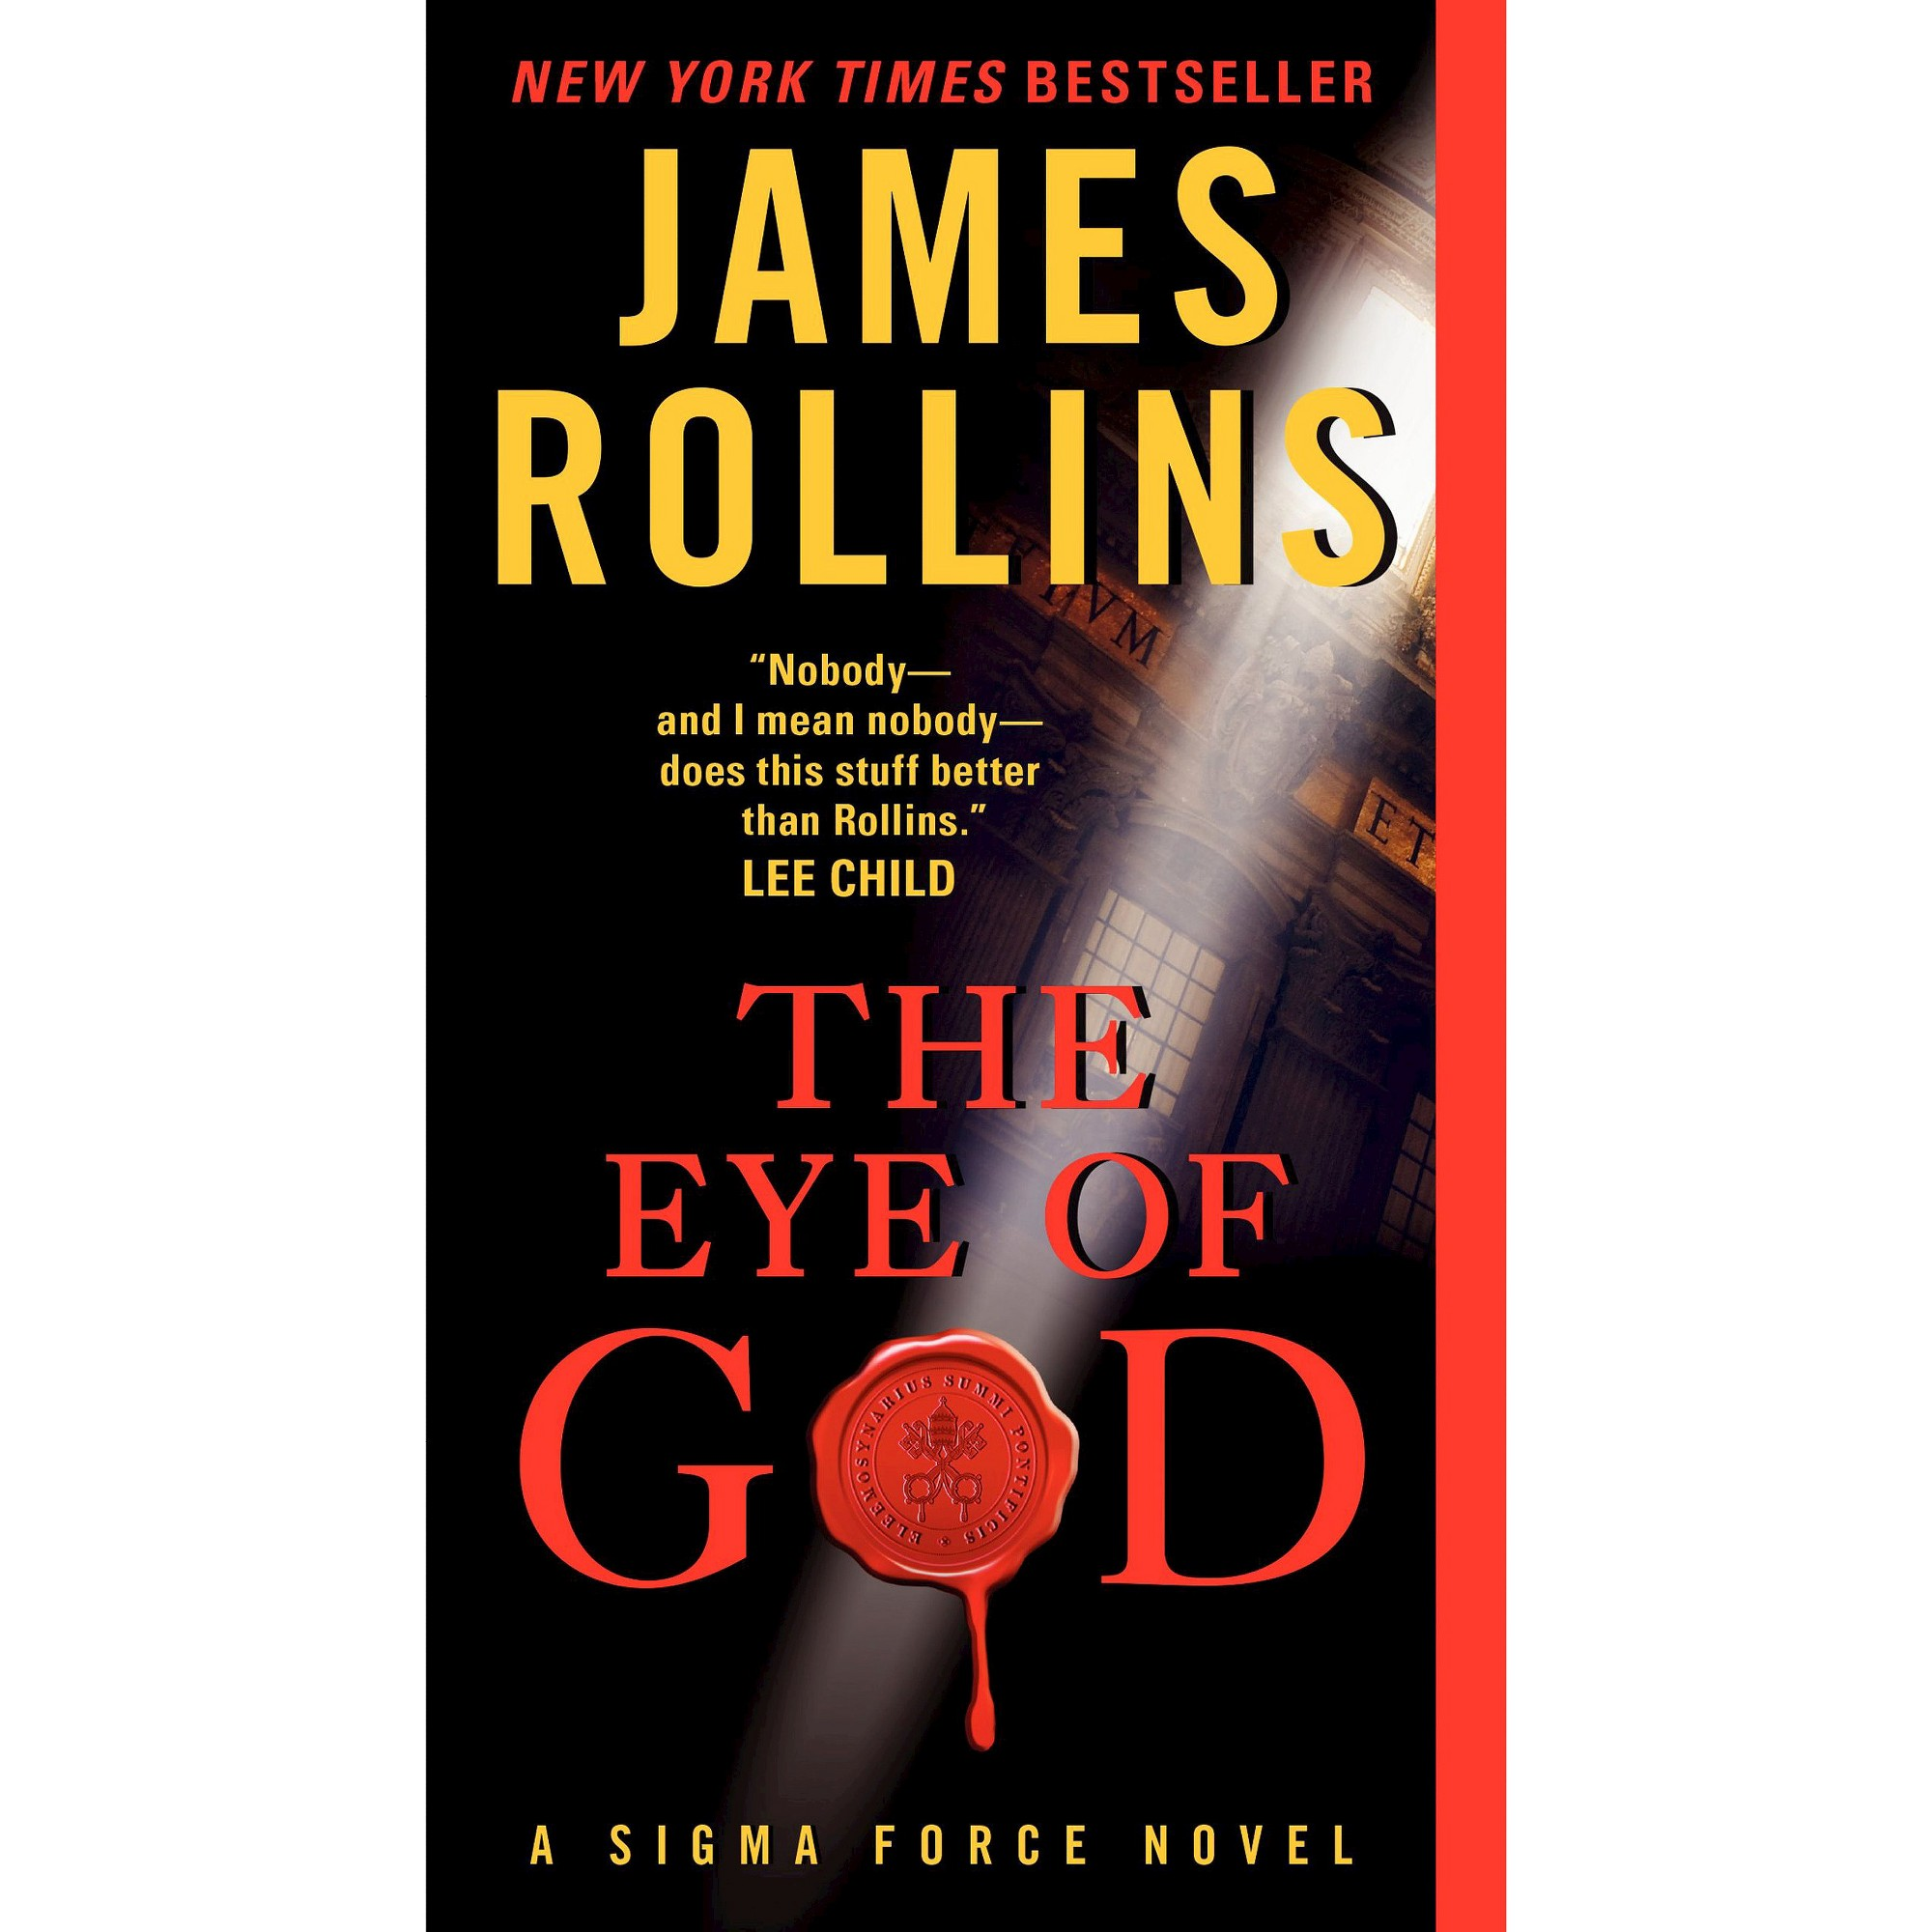 The Eye of God (Sigma Force Series) (Mass Market Paperback) by James Rollins